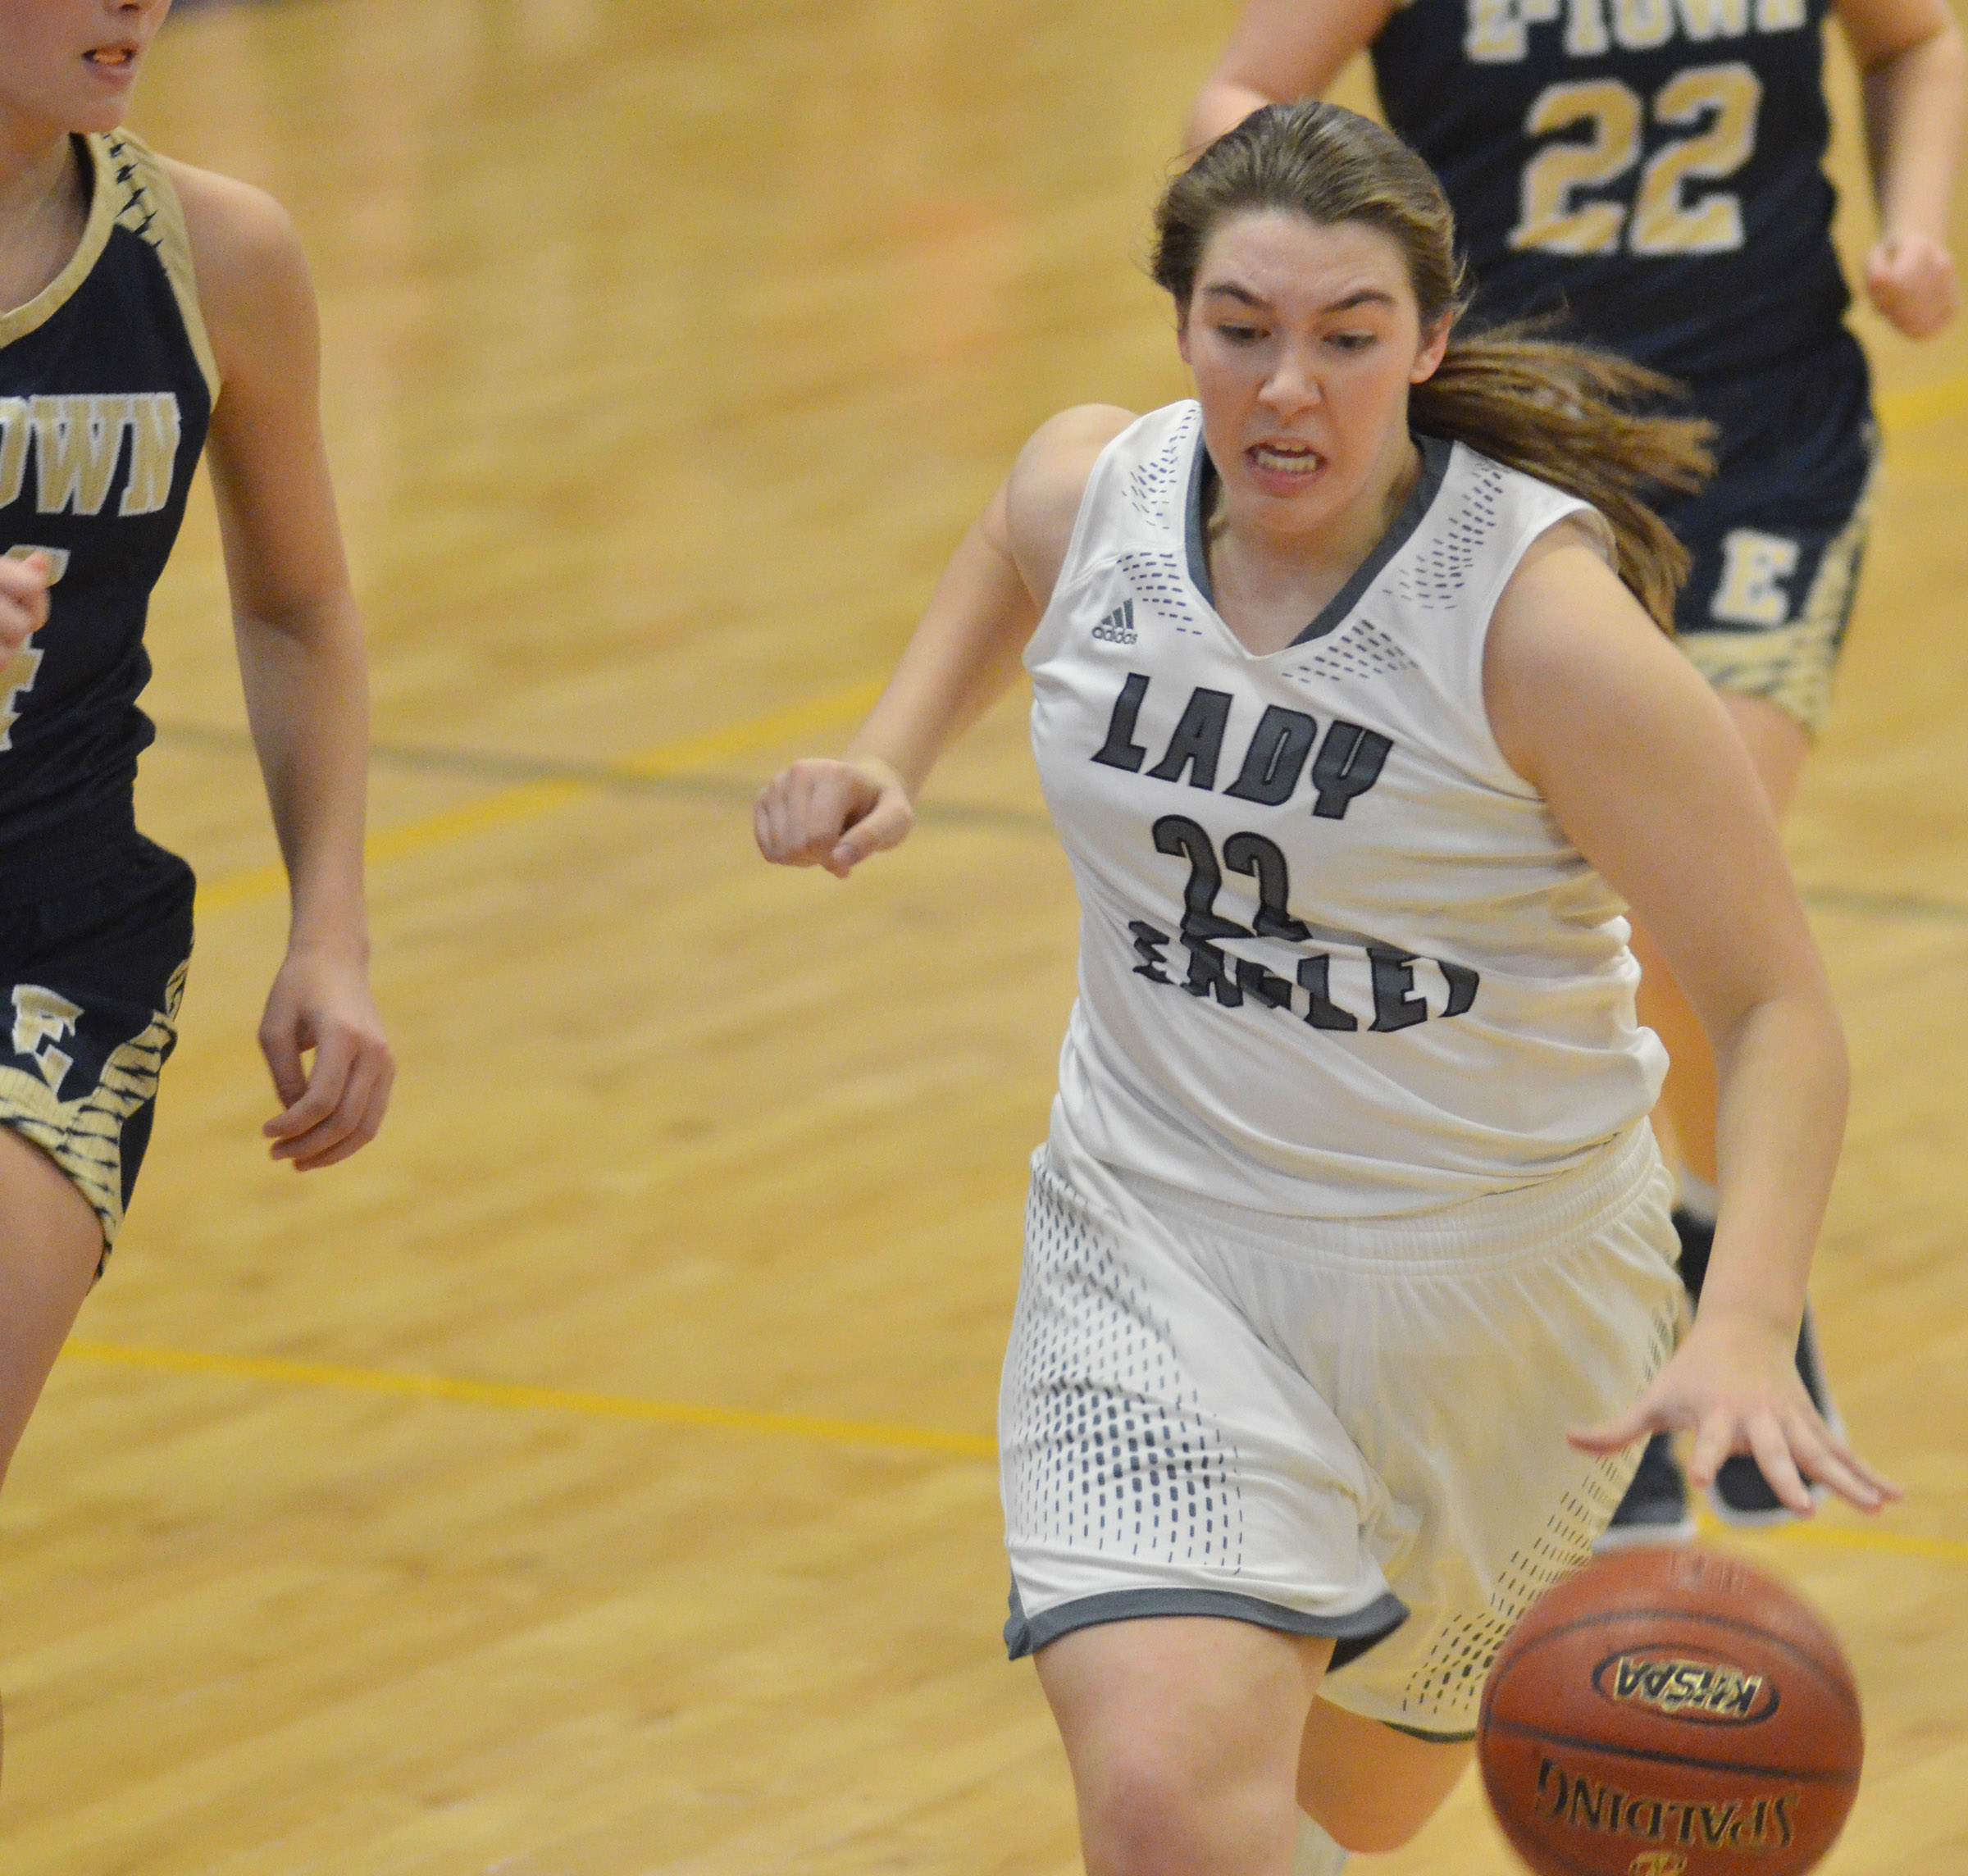 CHS freshman Abi Wiedewitsch runs down the court.